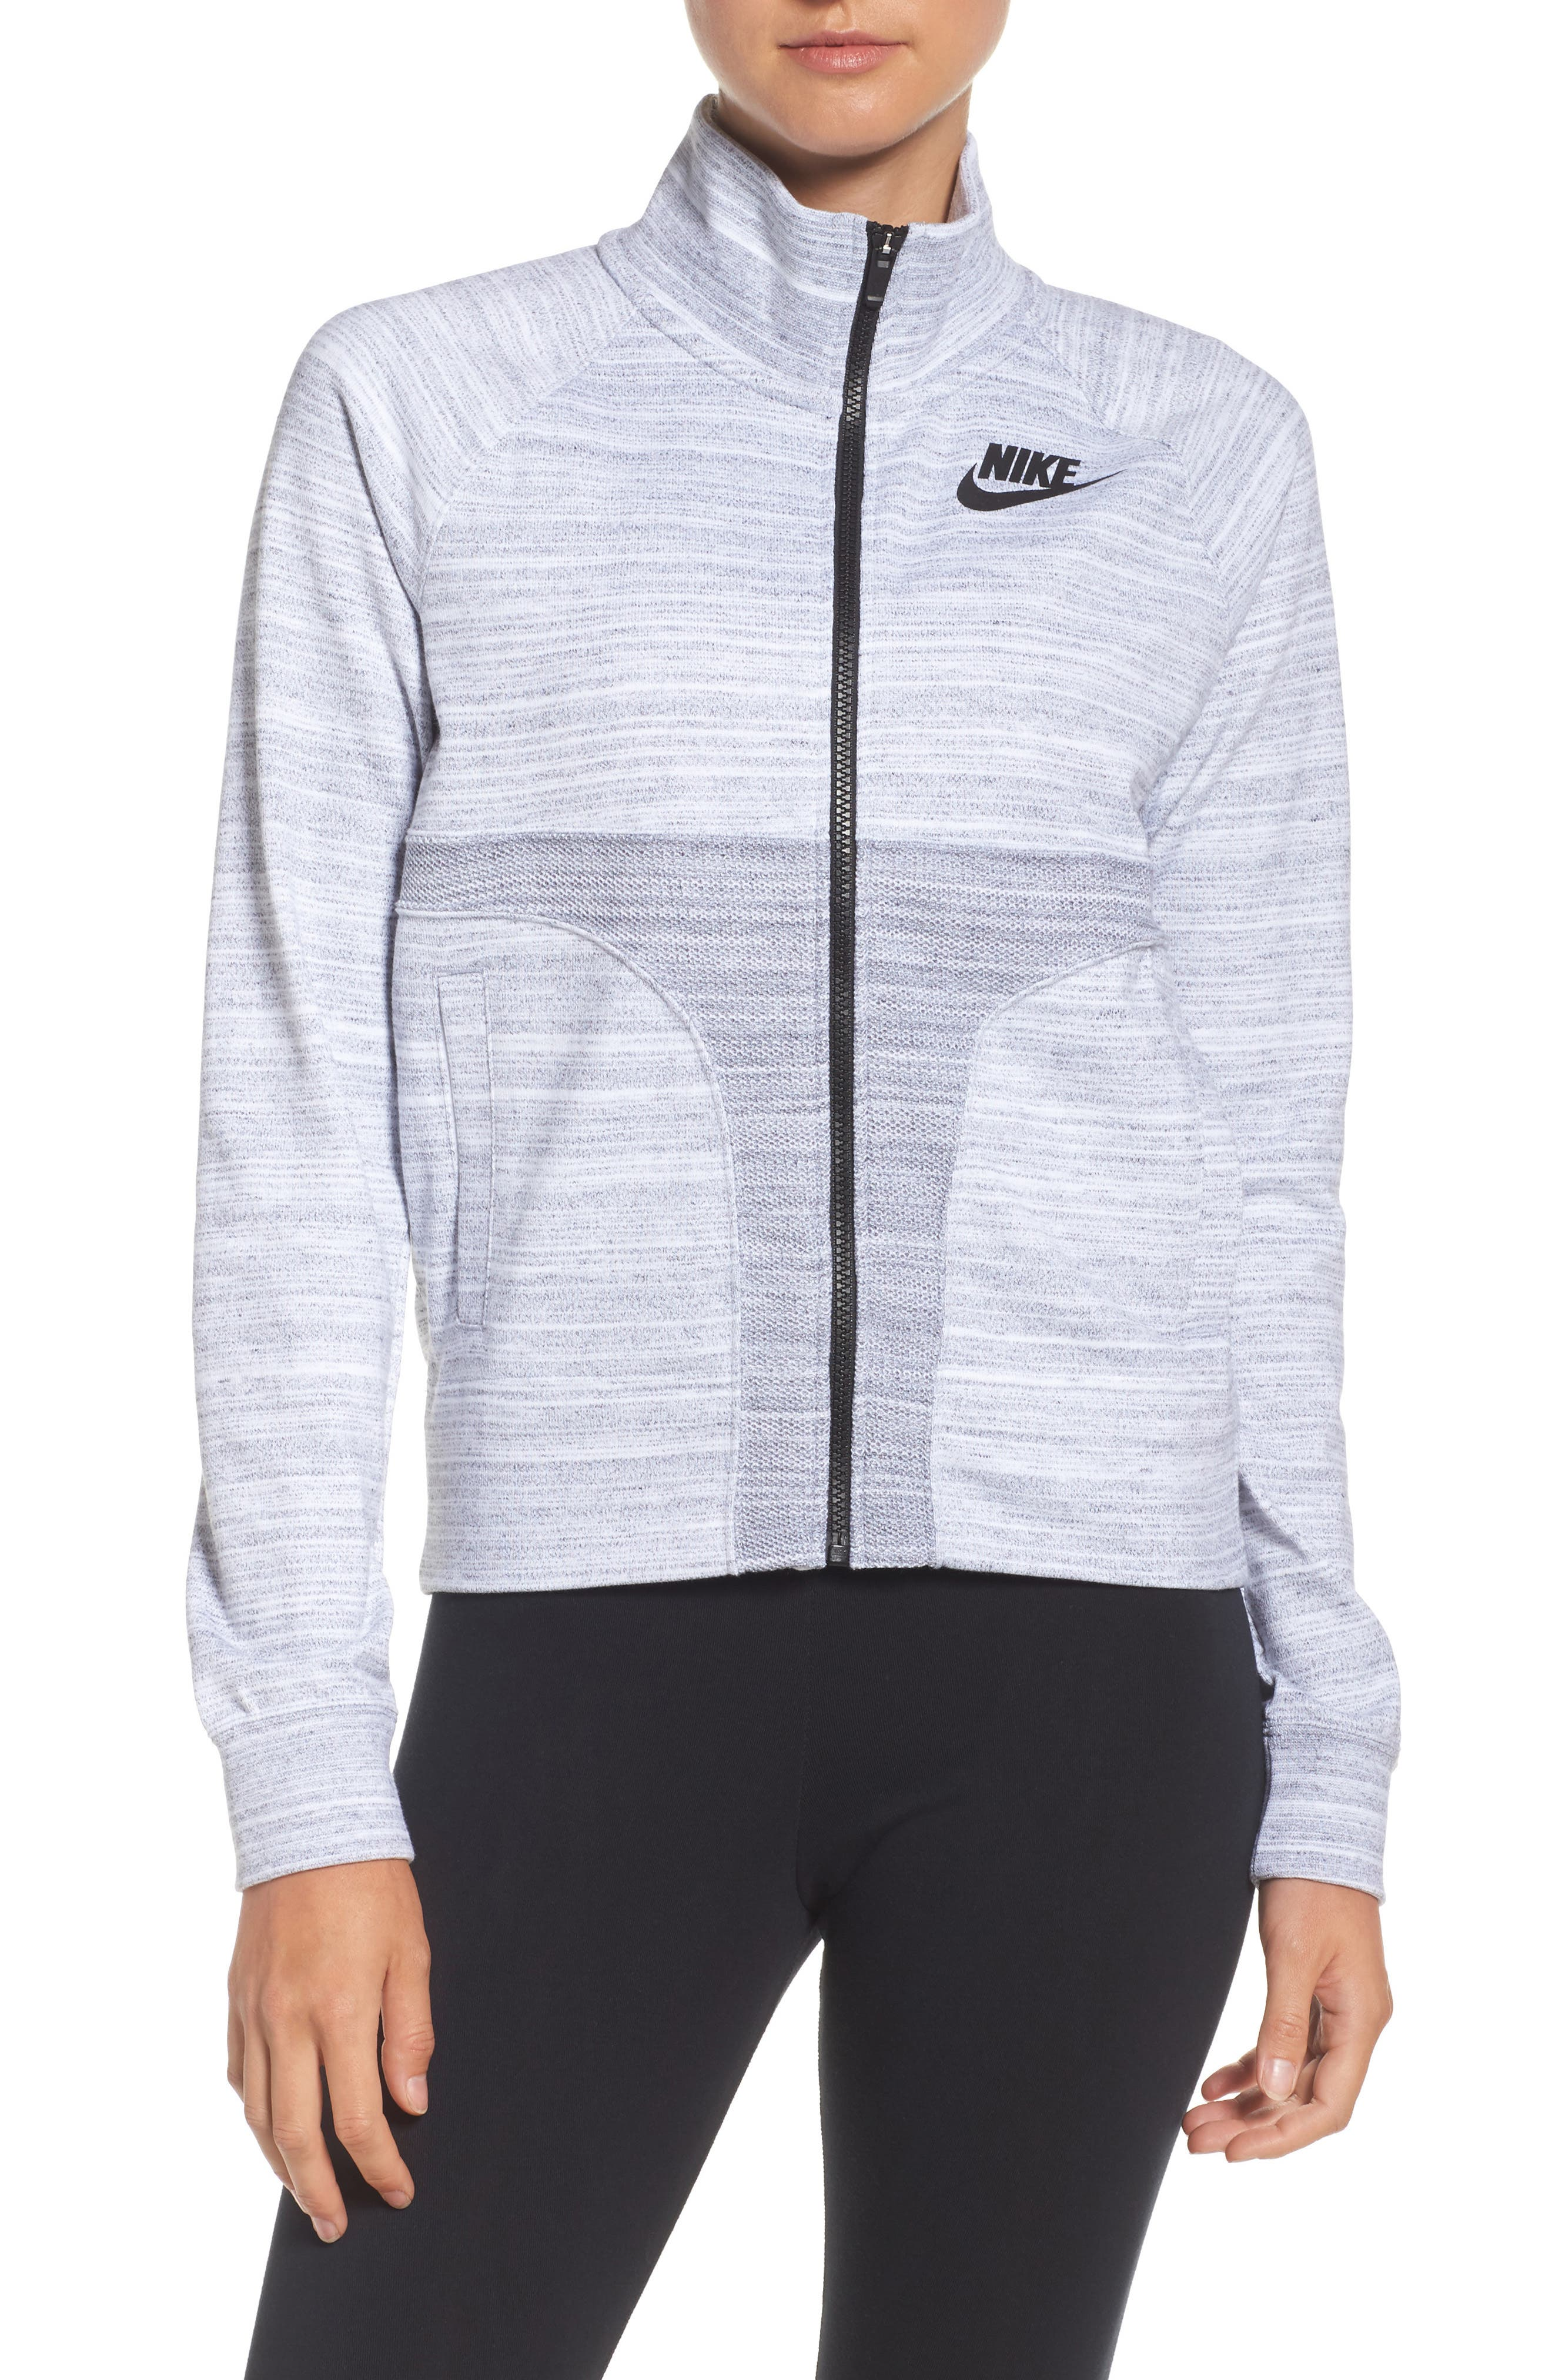 Main Image - Nike Sportswear Advance 15 Track Jacket